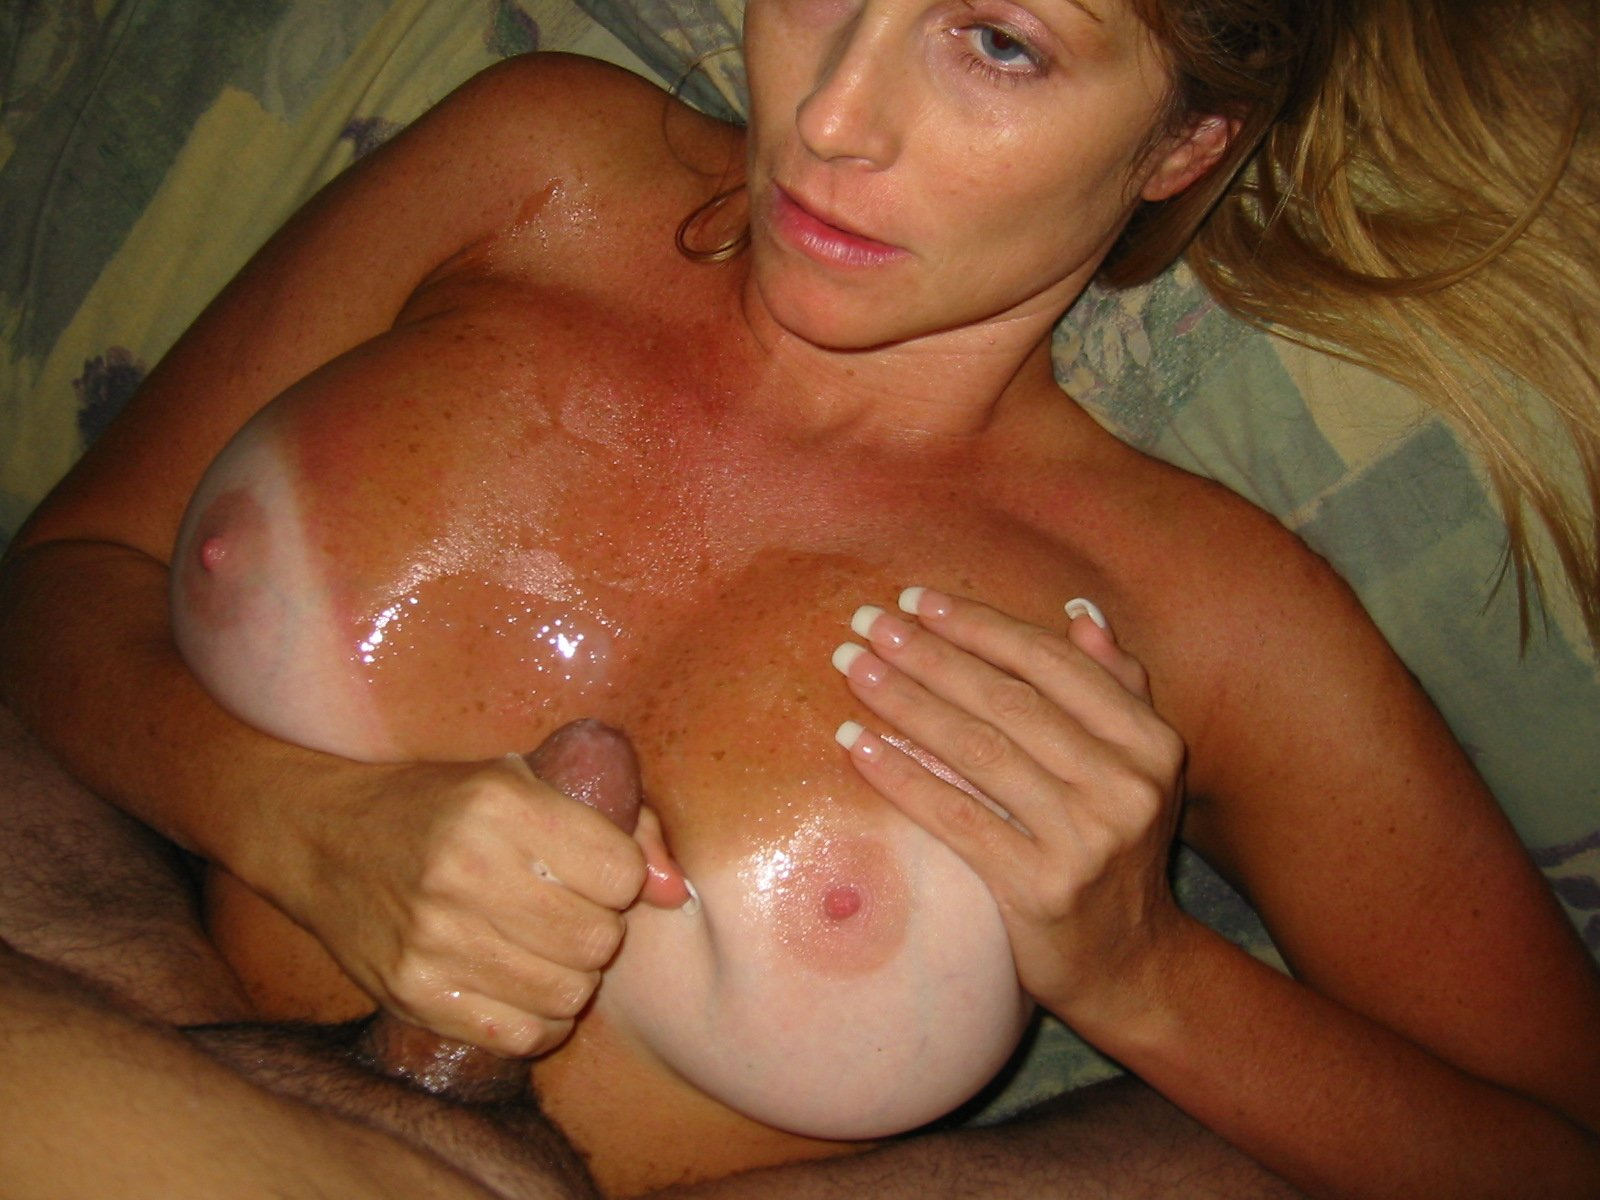 Fake tits homemade cumshot again... She